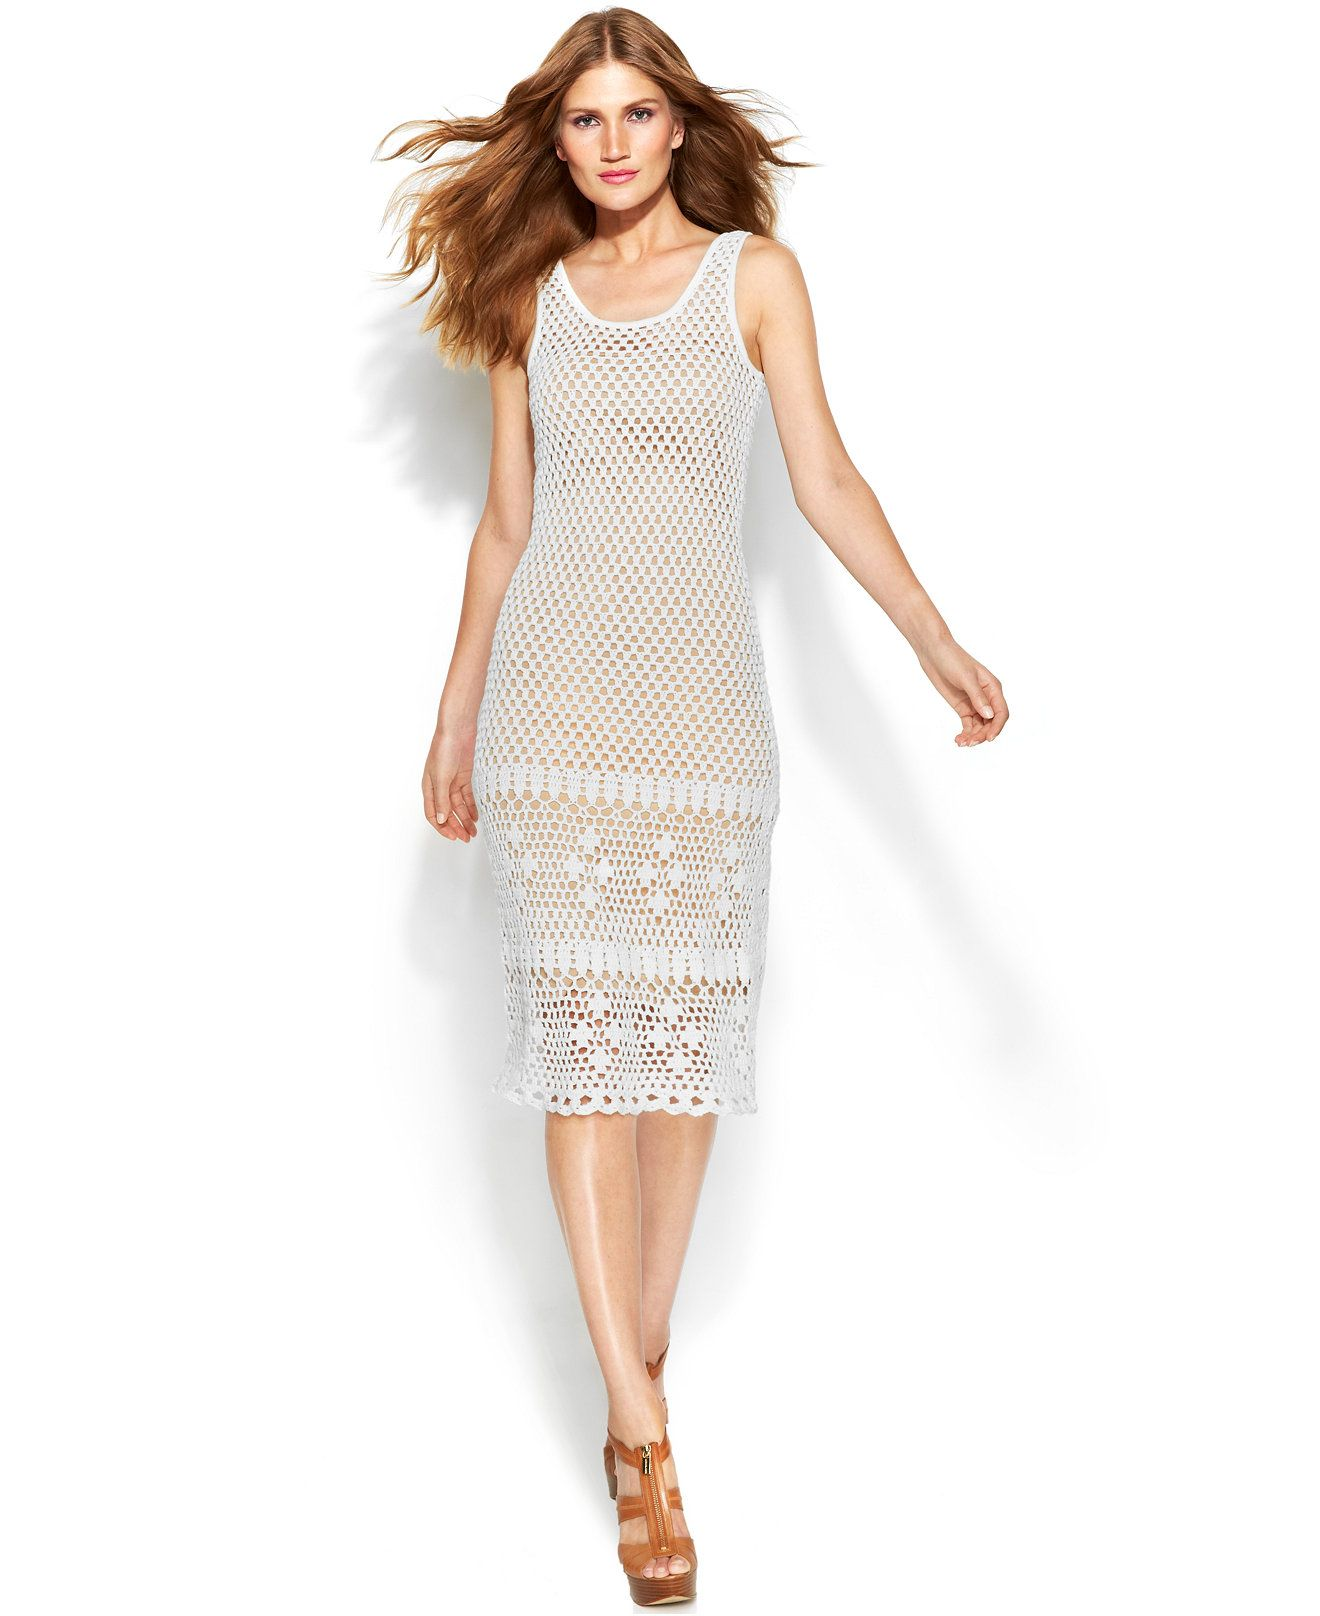 MICHAEL Michael Kors Sleeveless Crochet Midi Dress - Dresses - Women -  Macy's